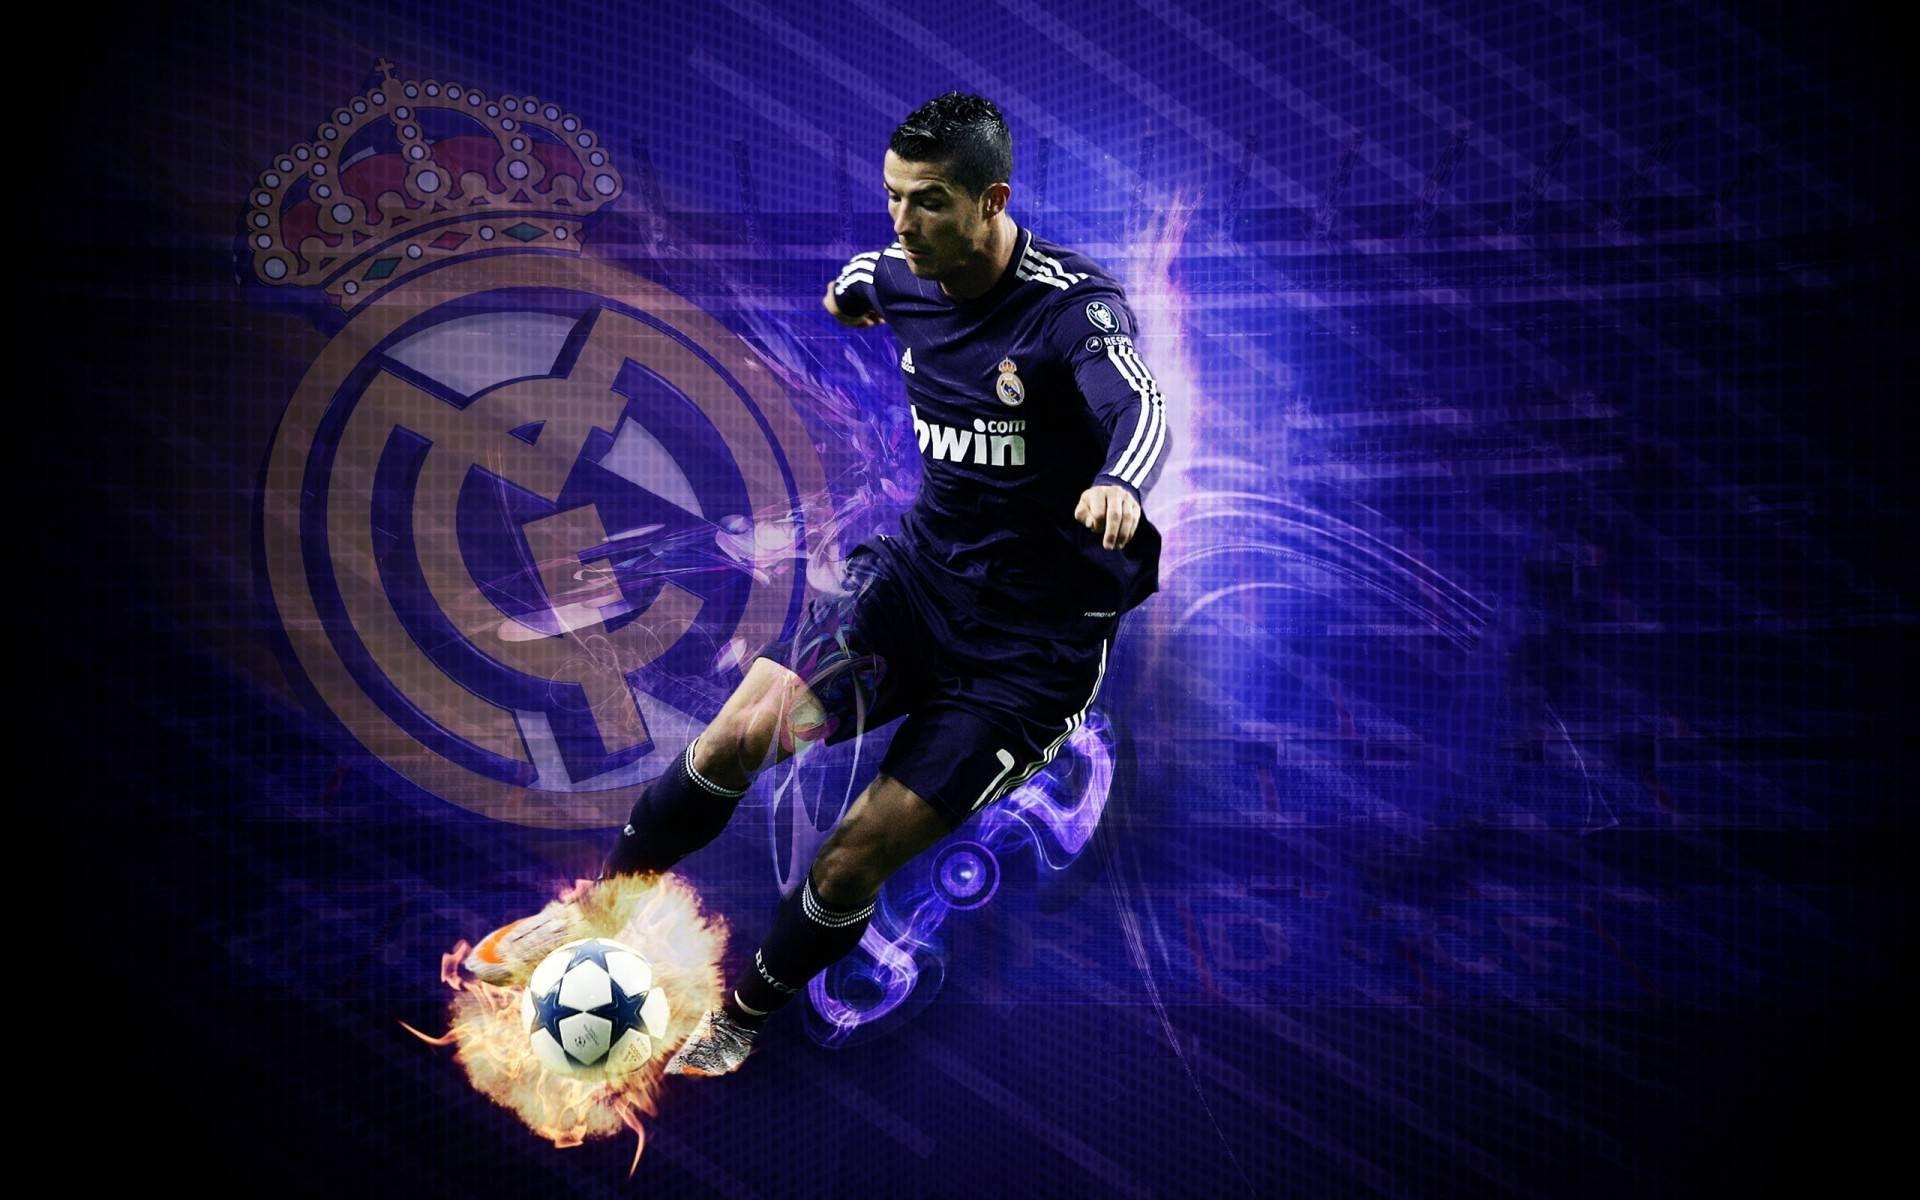 Pin By Masieboi On Maso Real Madrid Wallpapers Cristiano Ronaldo Hd Wallpapers Football Wallpaper